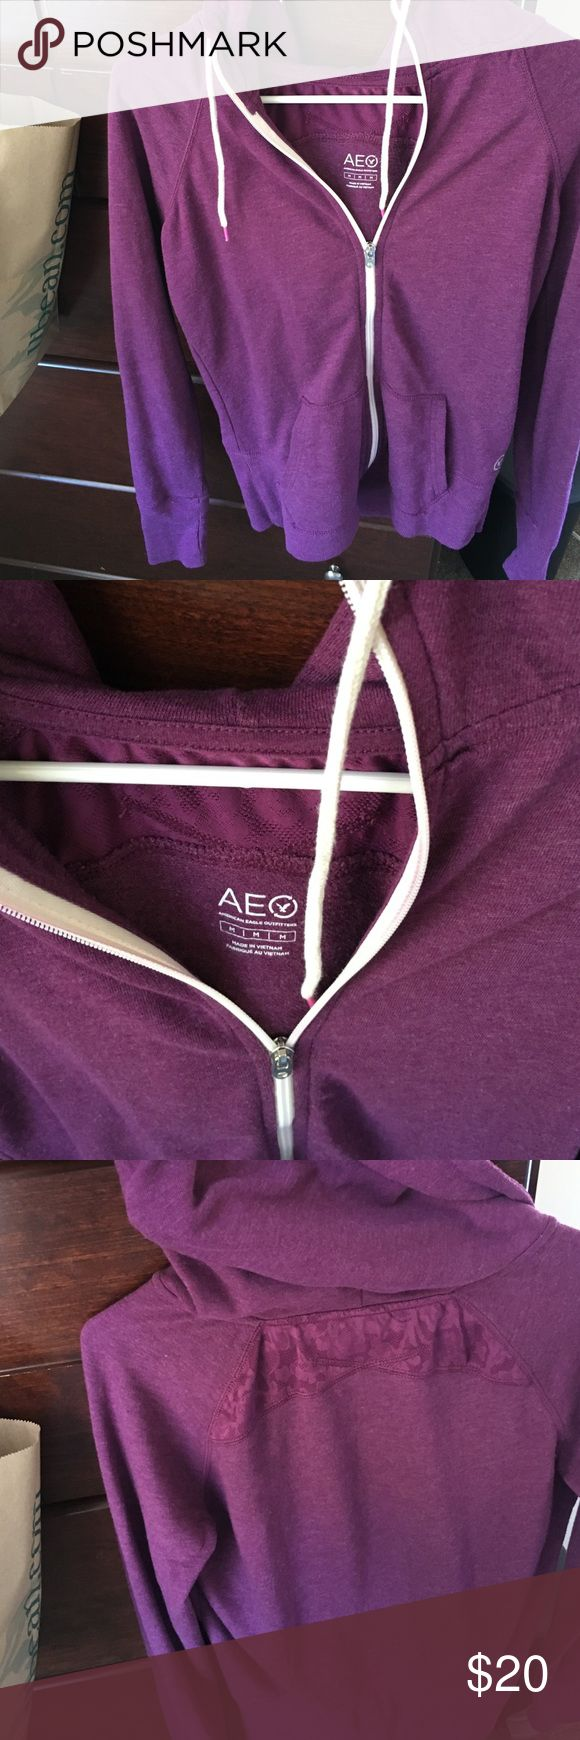 American Eagle sweatshirt size M Purple zip-up sweatshirt - size Medium - gently worn. No stains or damage! Could bundle with other American Eagle items listed! Has thumb holes in sleeves. American Eagle Outfitters Tops Sweatshirts & Hoodies